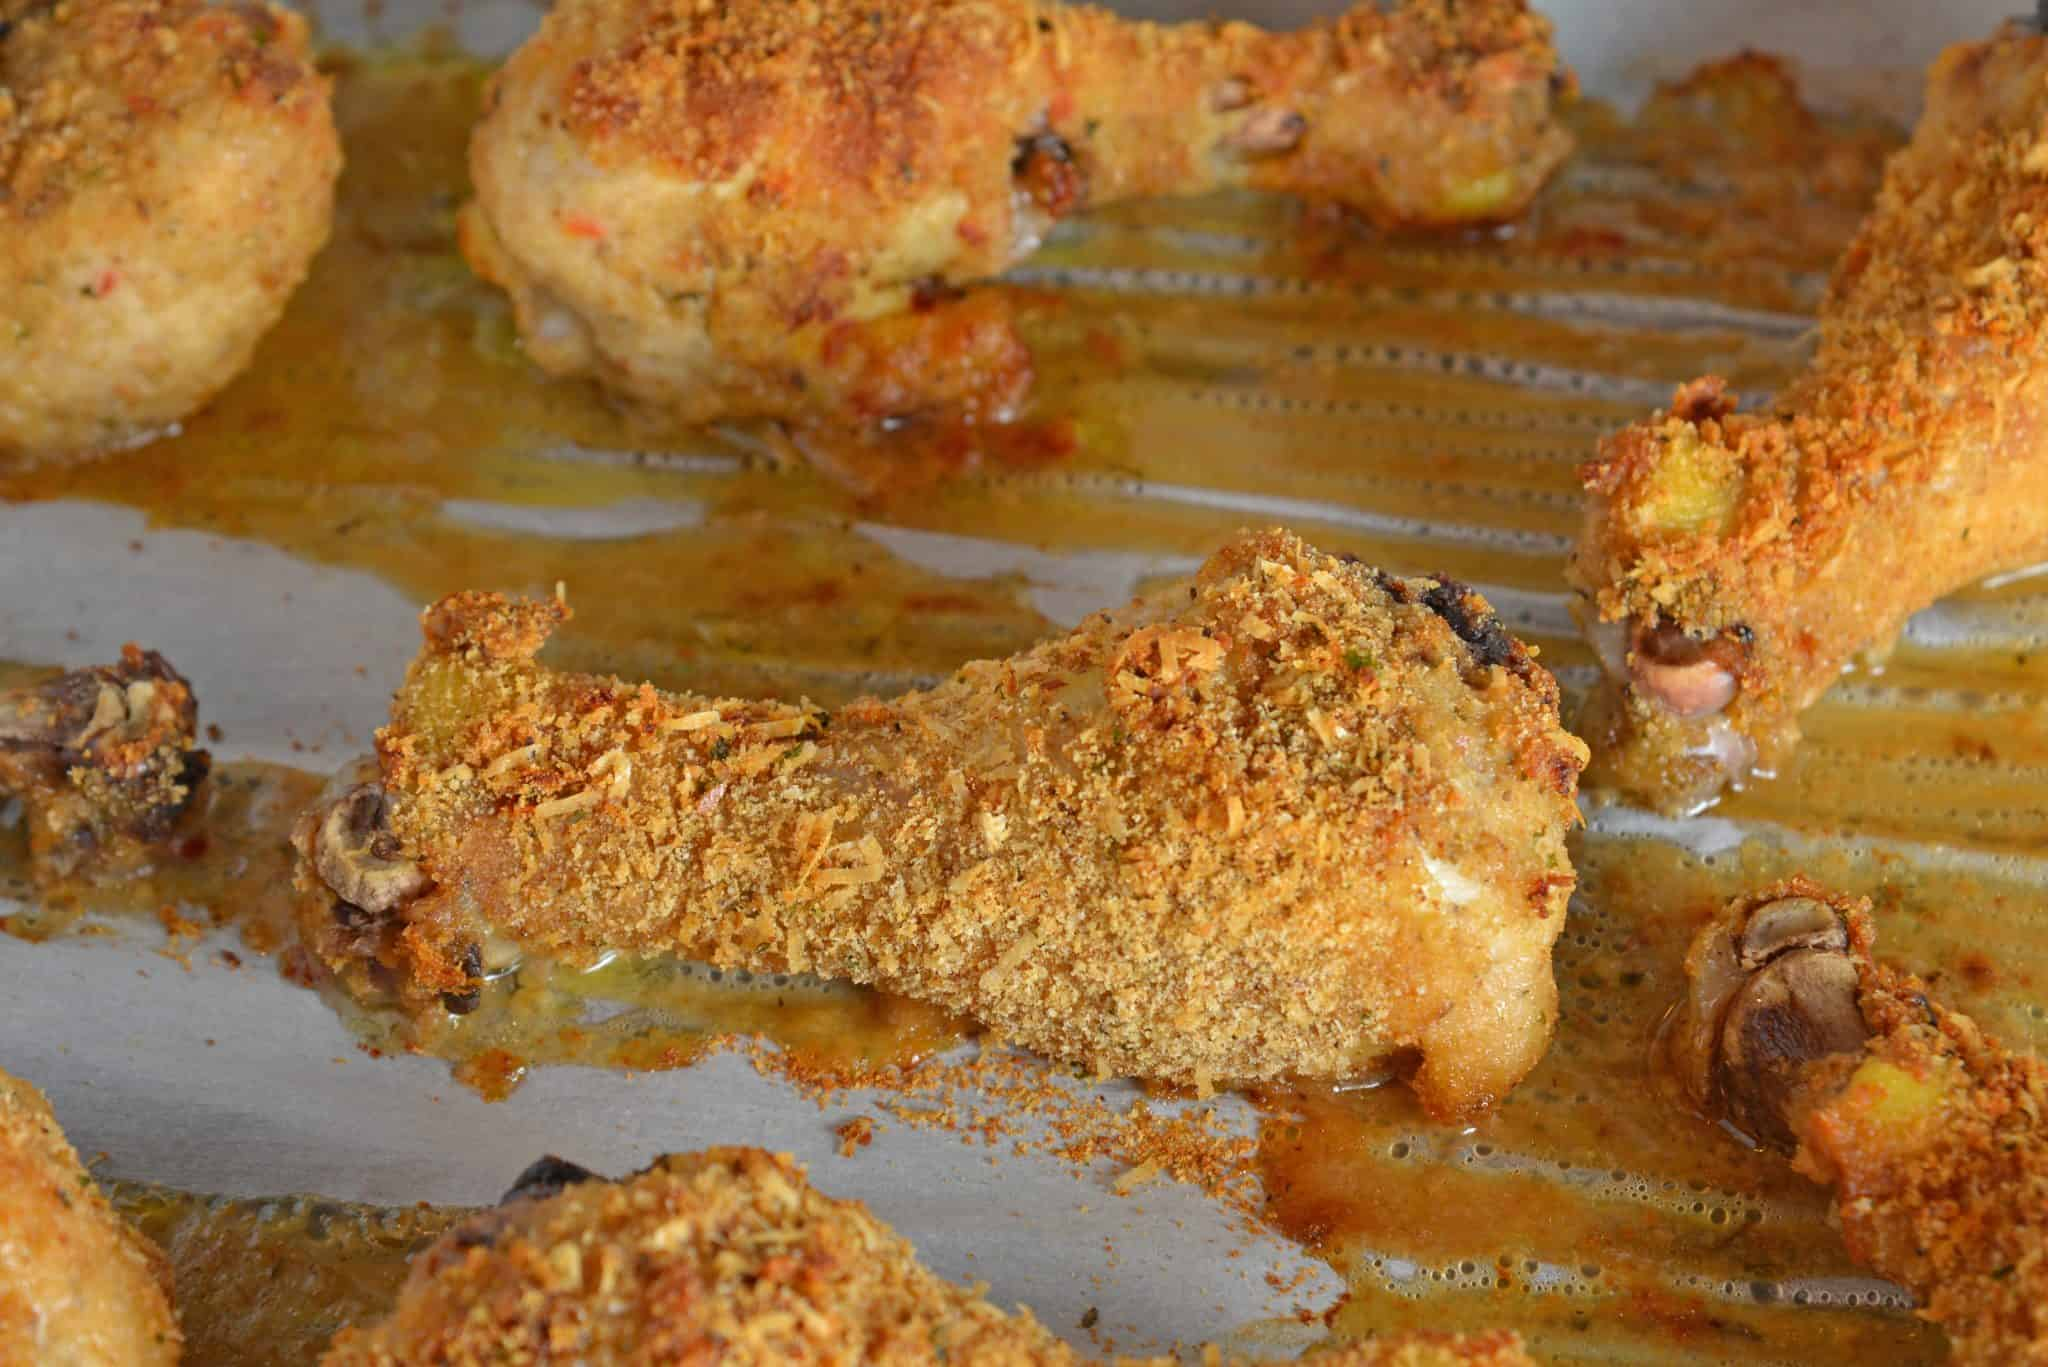 Crispy Baked Chicken is a melt-in-your-mouth oven fried chicken with tongue-tingling flavor that will leave you craving more. #crispybakedchicken #ovenbakedchicken #bestovenfriedchicken www.savoryexperiments.com